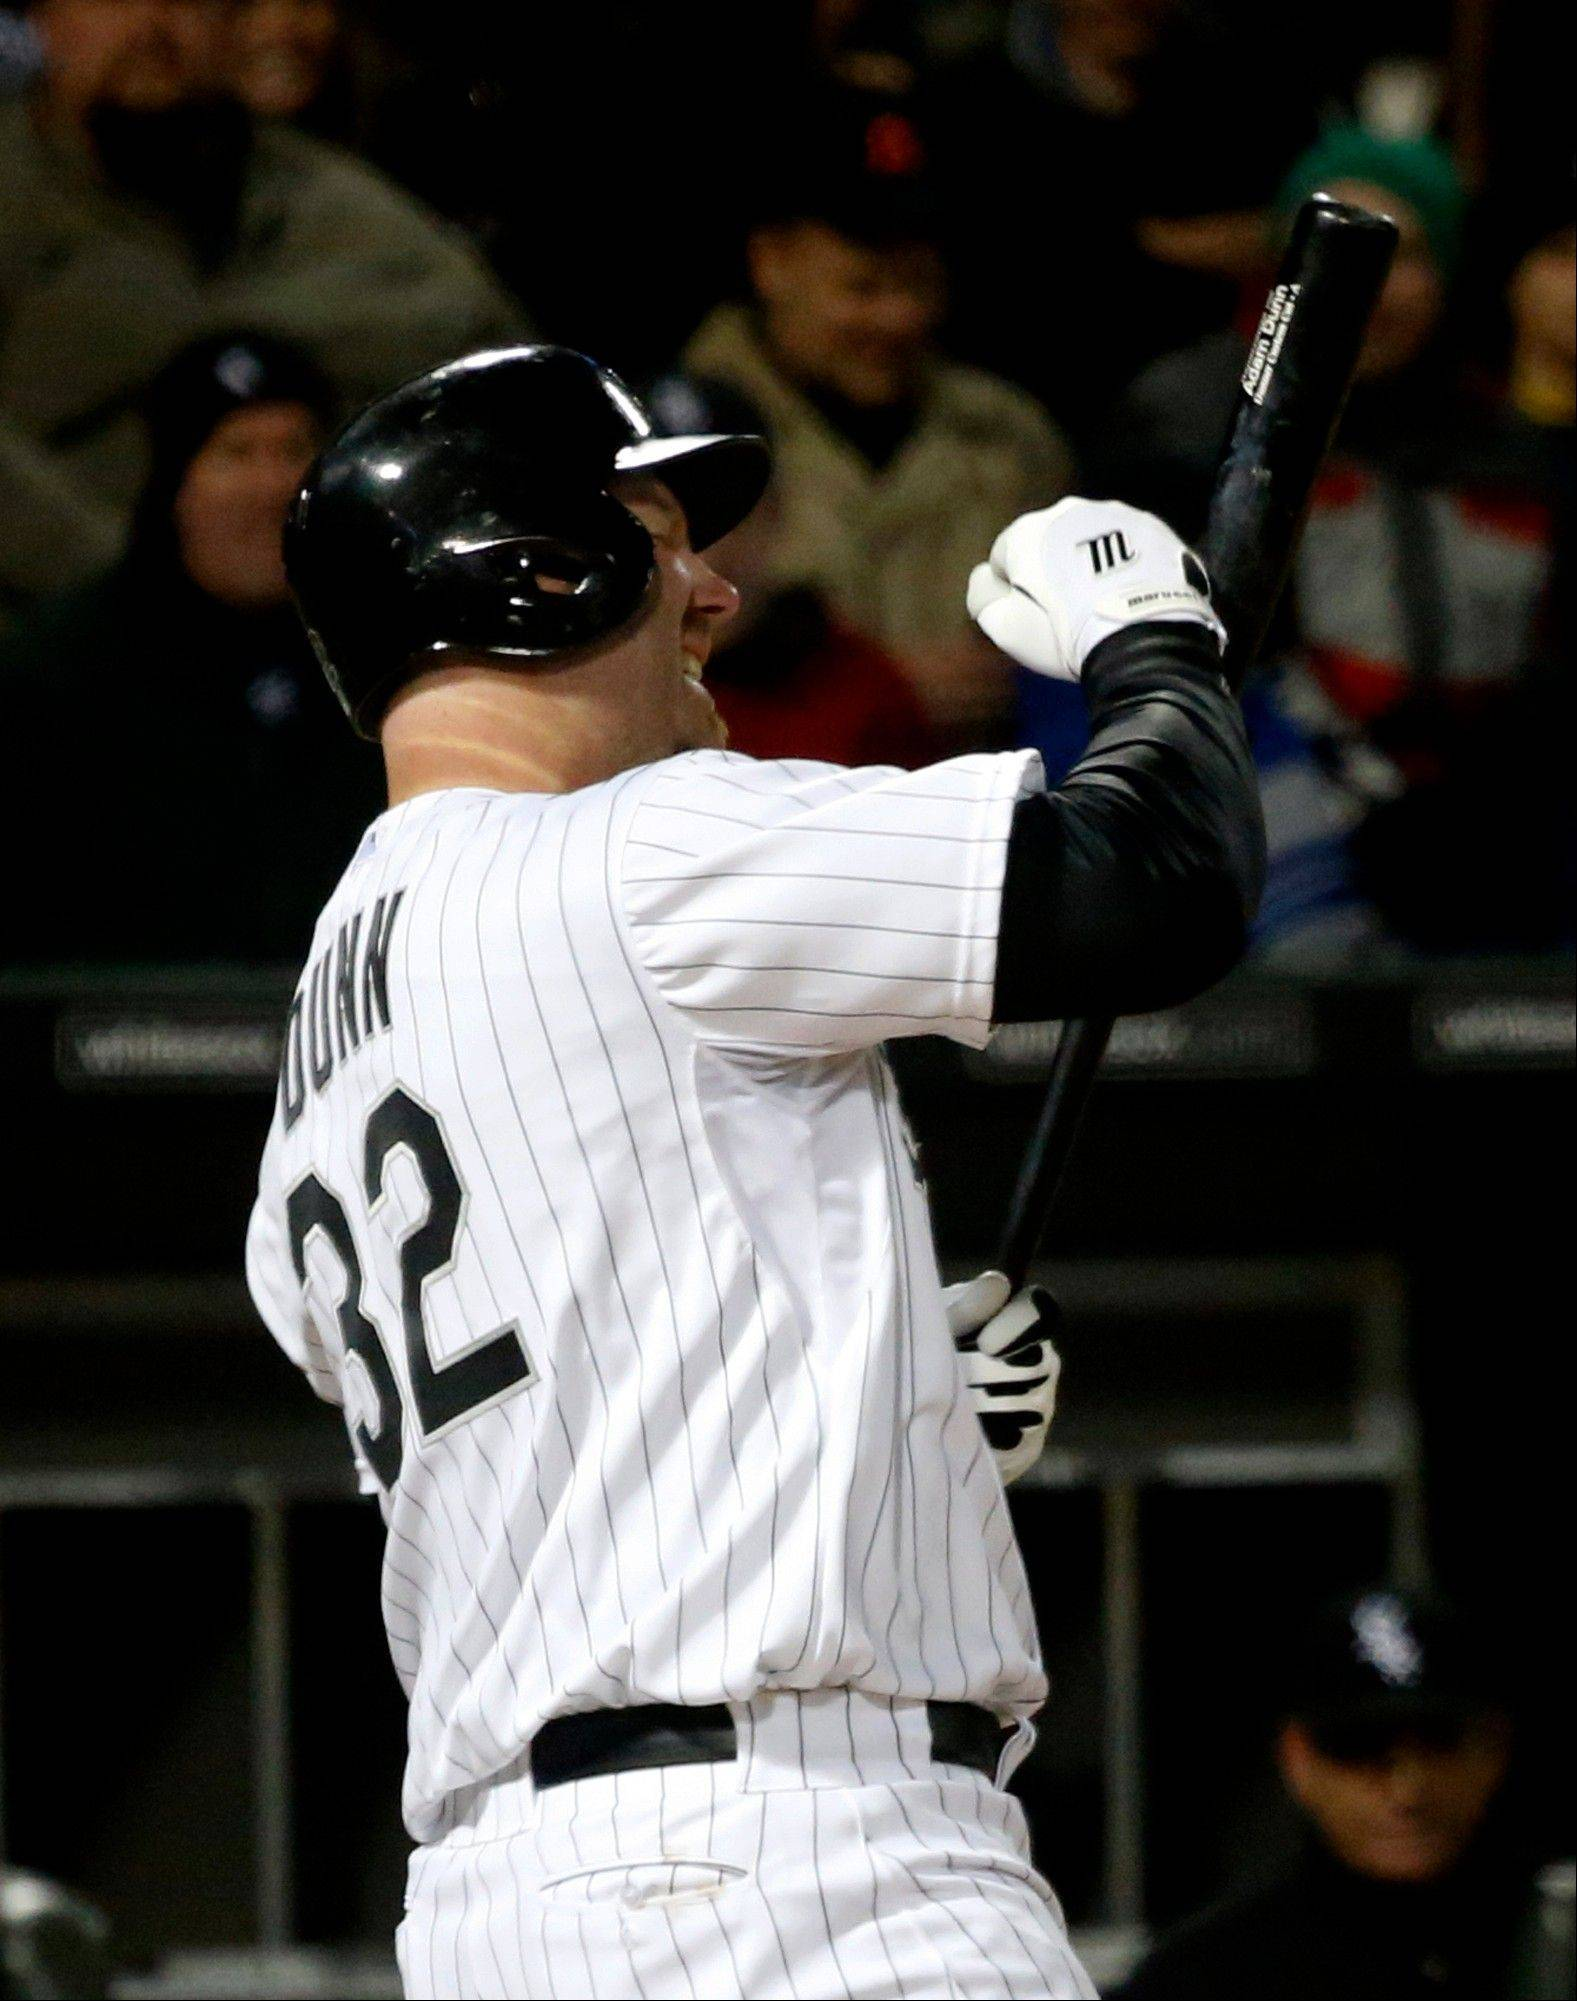 Chicago White Sox's Adam Dunn punches his bat after striking out against Seattle Mariners starting pitcher Blake Beavan during the fifth inning of a baseball game on Friday, April 5, 2013, in Chicago. (AP Photo/Charles Rex Arbogast)